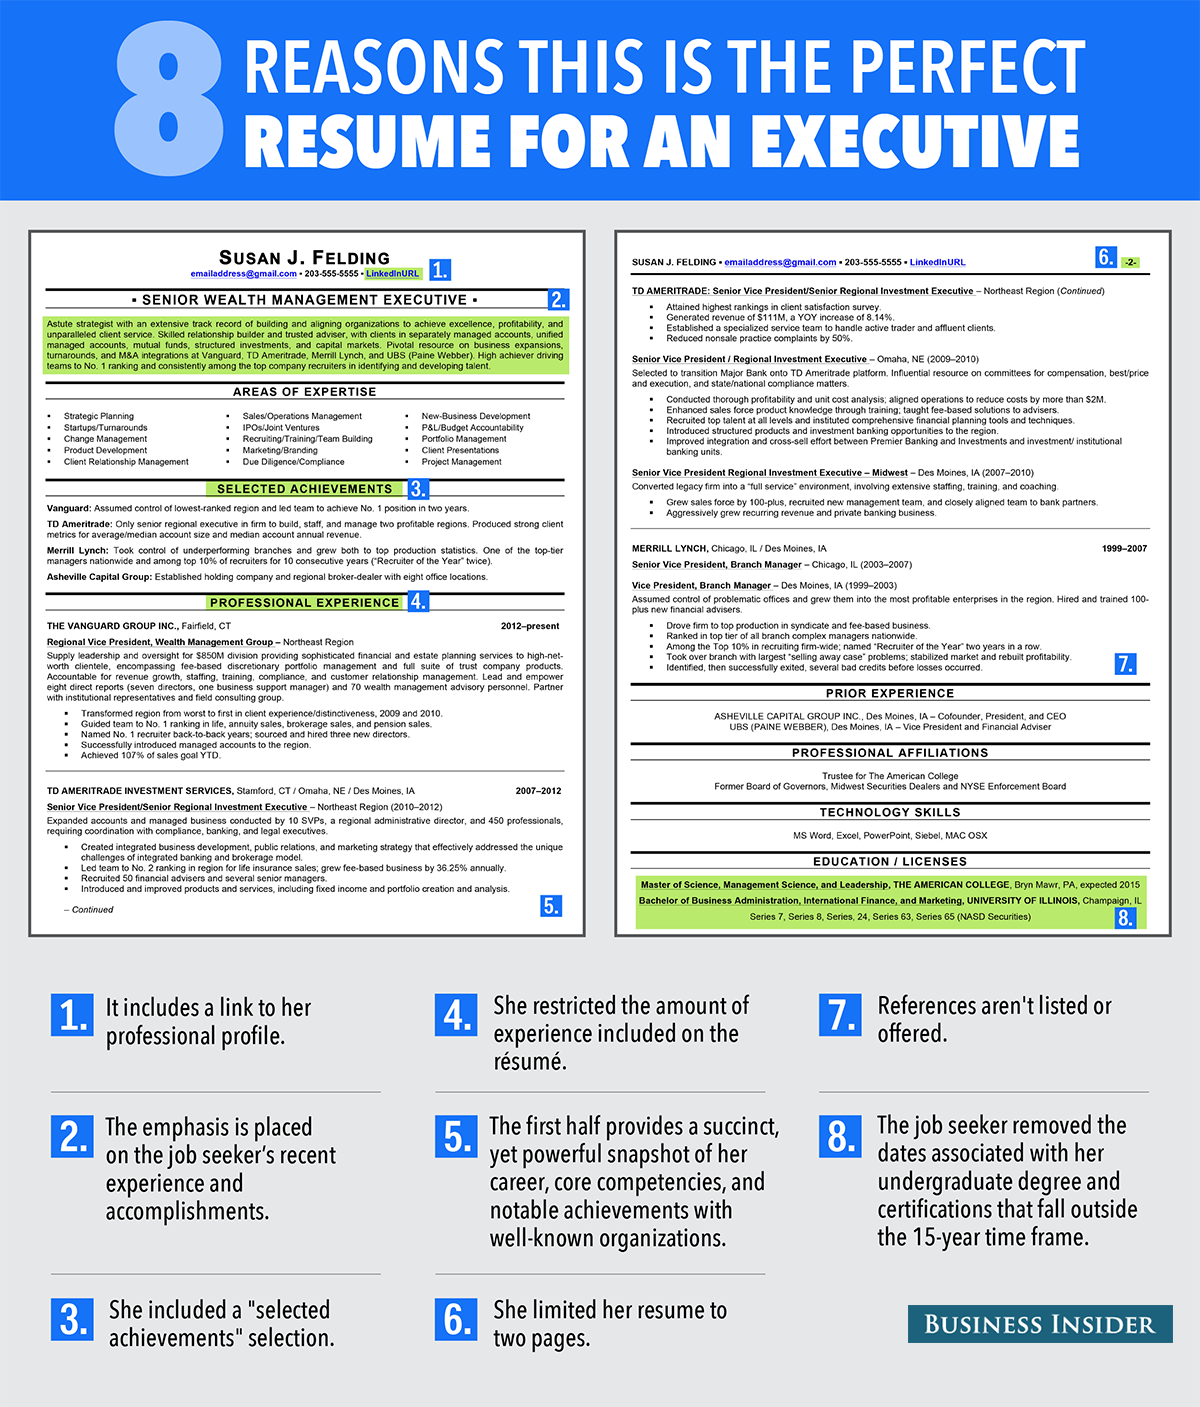 Tips For A Perfect Resume 8 Reasons This Is An Ideal Résumé For Someone With A Lot